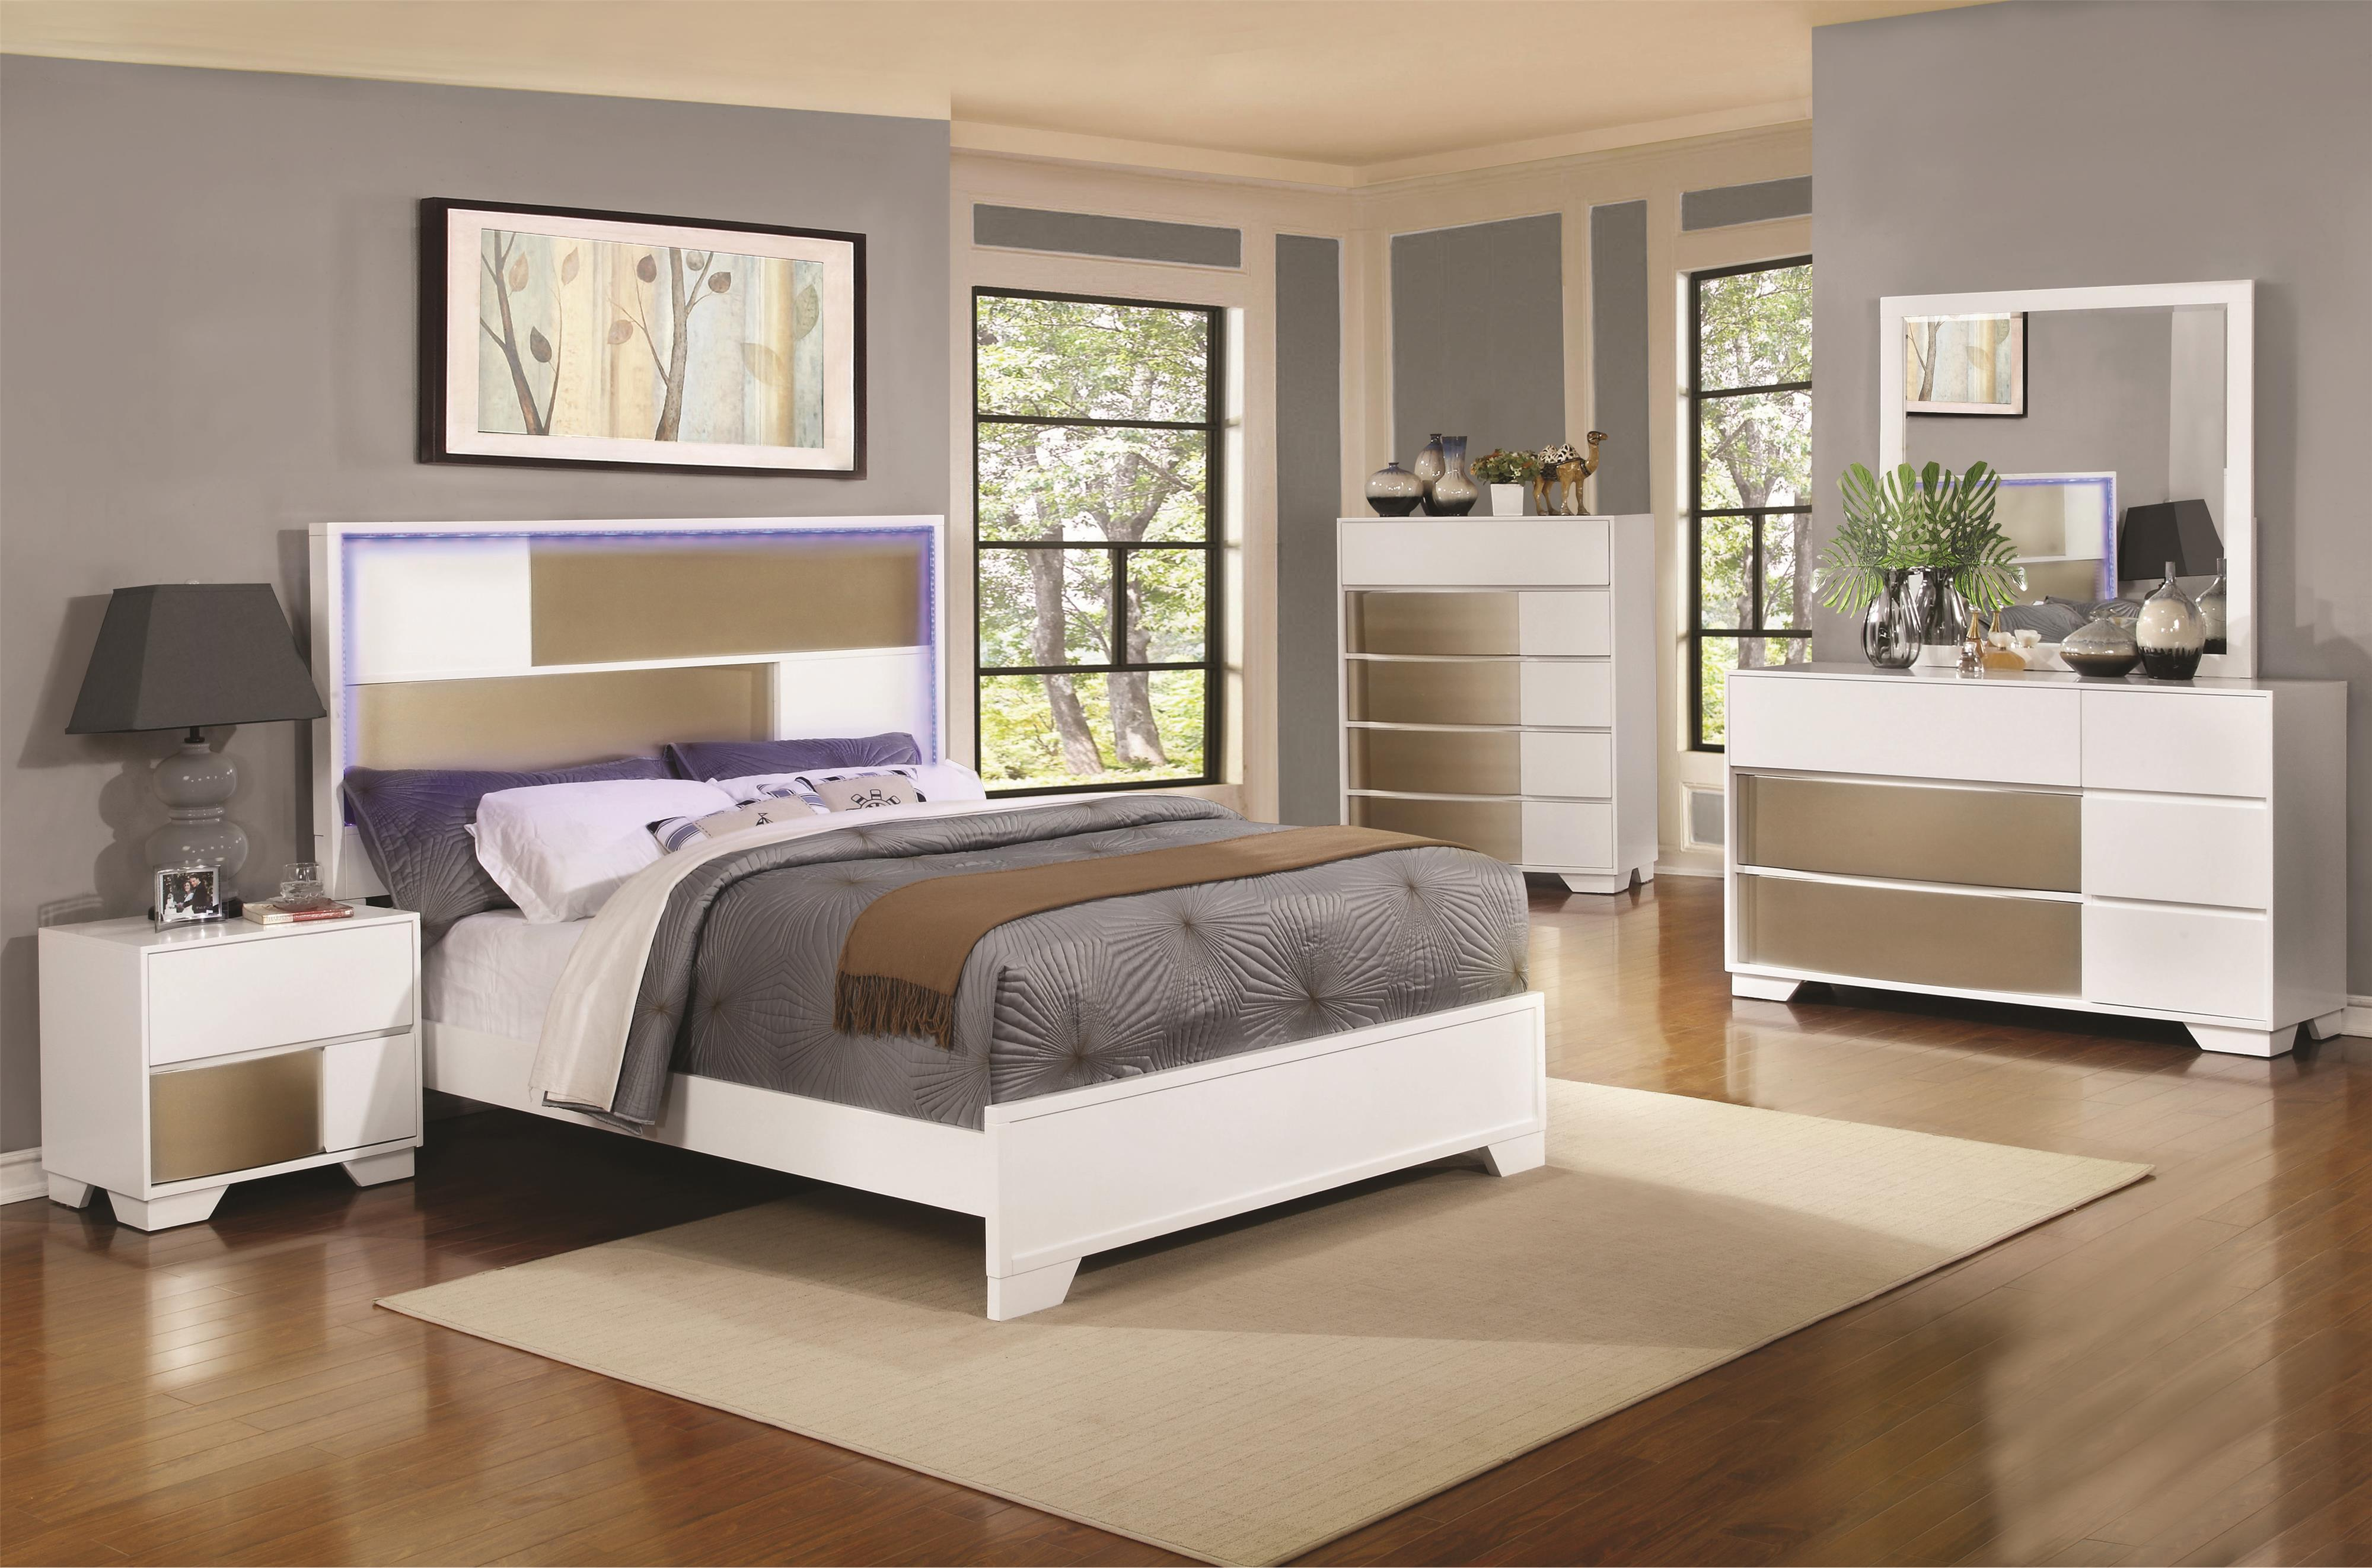 Coaster Havering Queen Bedroom Group - Item Number: 2047 Q Bedroom Group